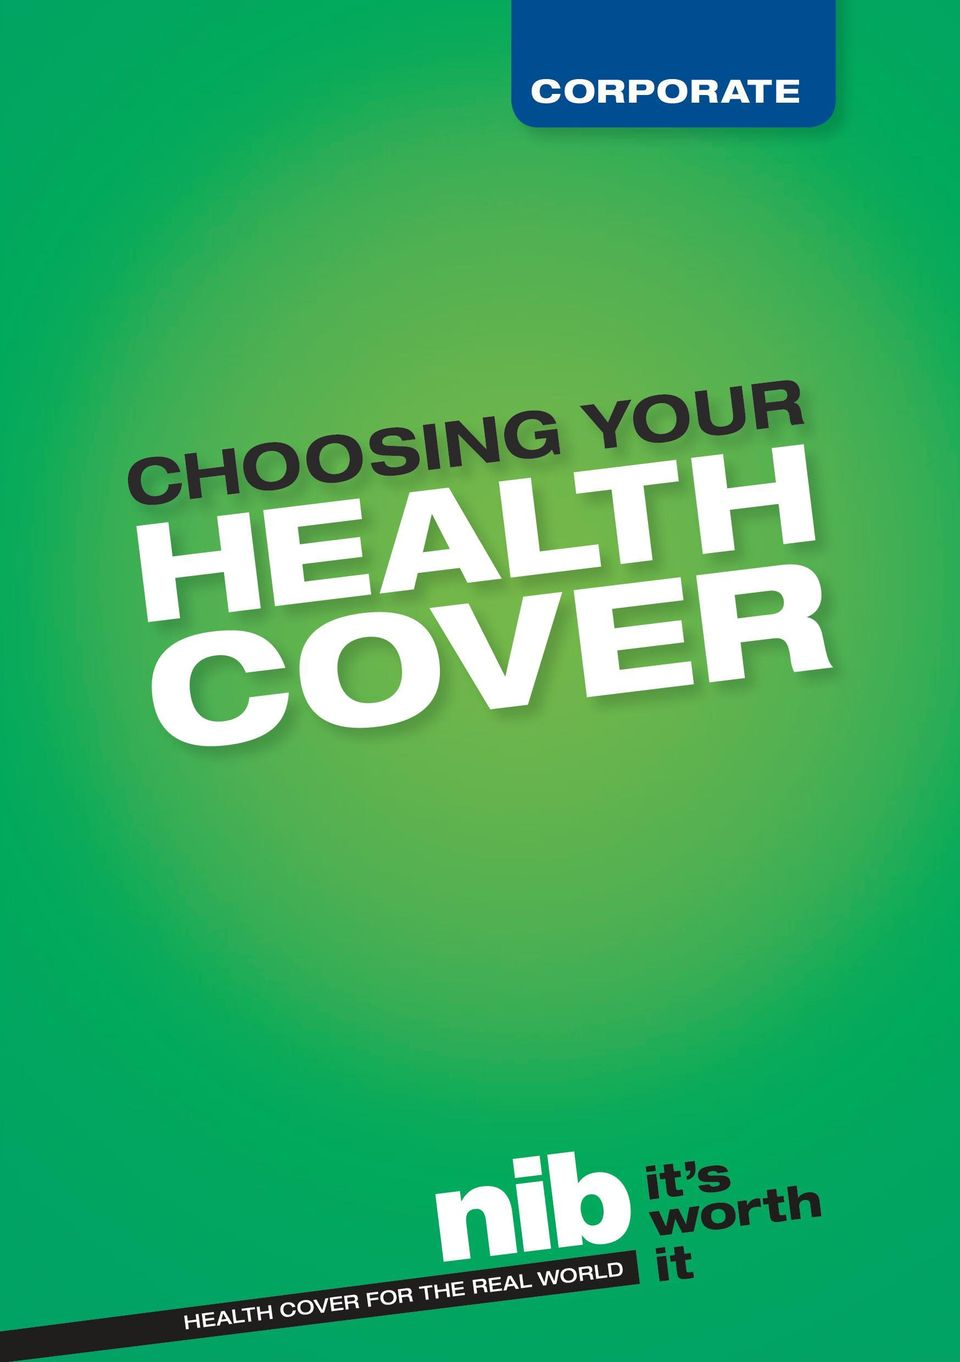 health cover for the